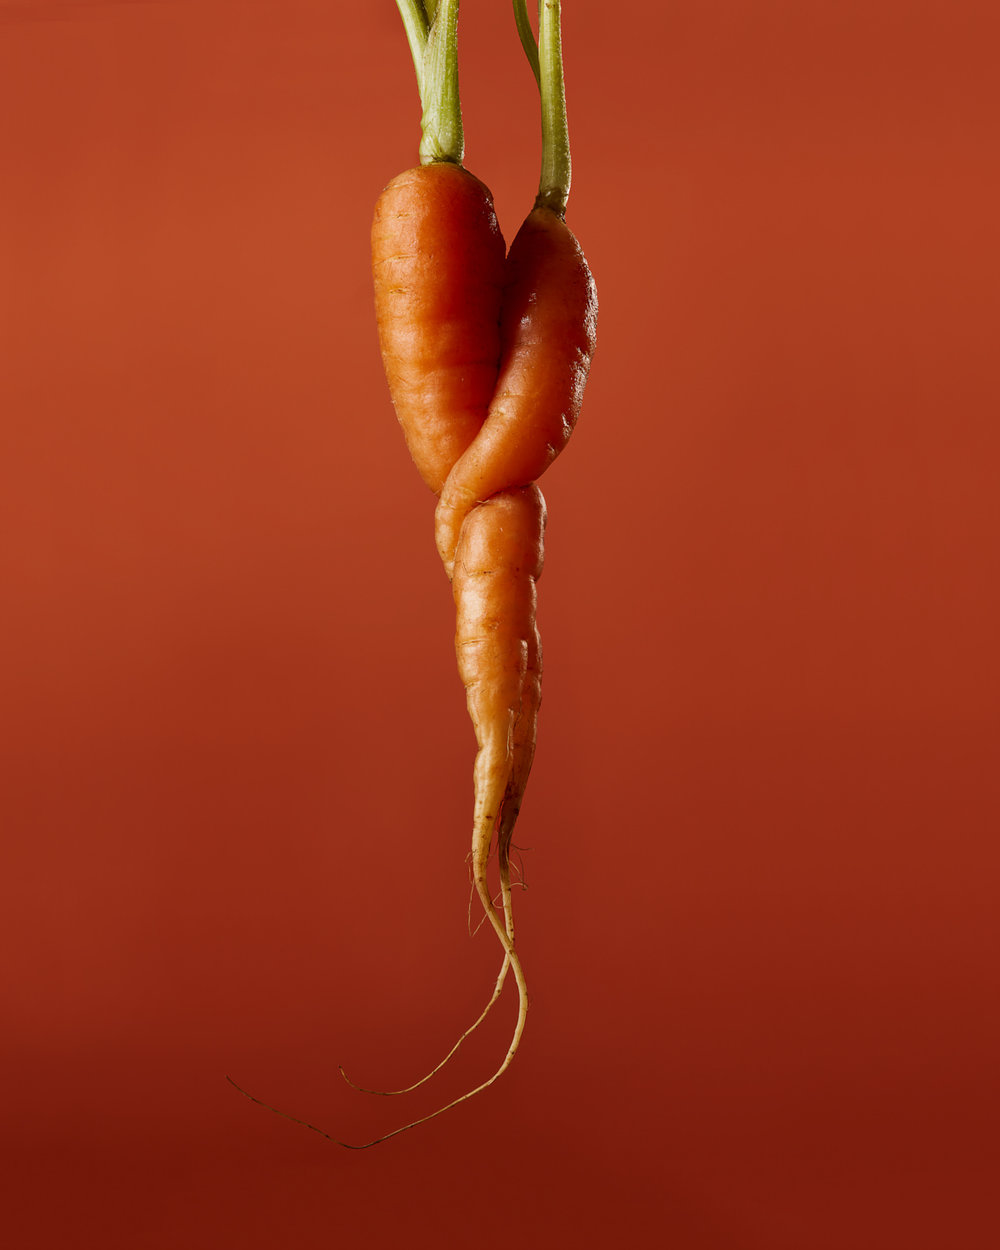 Copy of Carrot Food Stylist Judy Kim Photographer Josh Dickinson